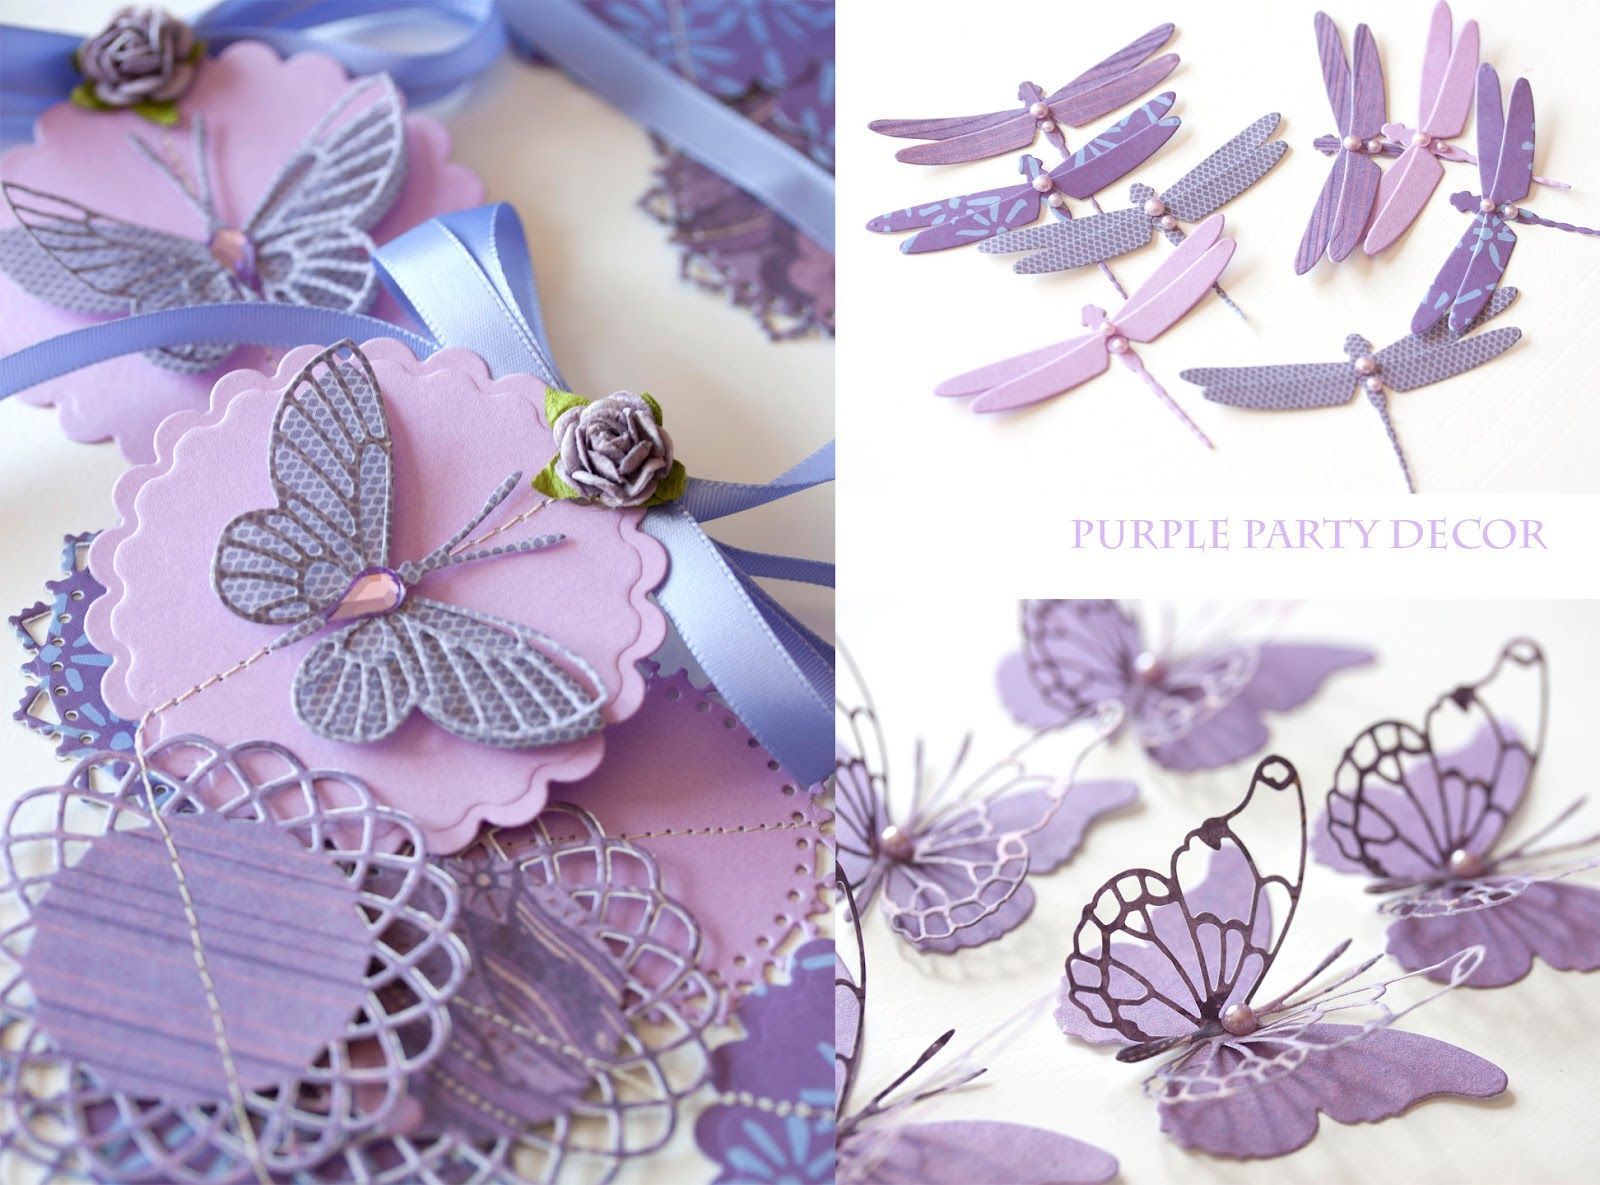 How to make scrapbook decorations - Purple Party Decorations Craving For More Cards To Make